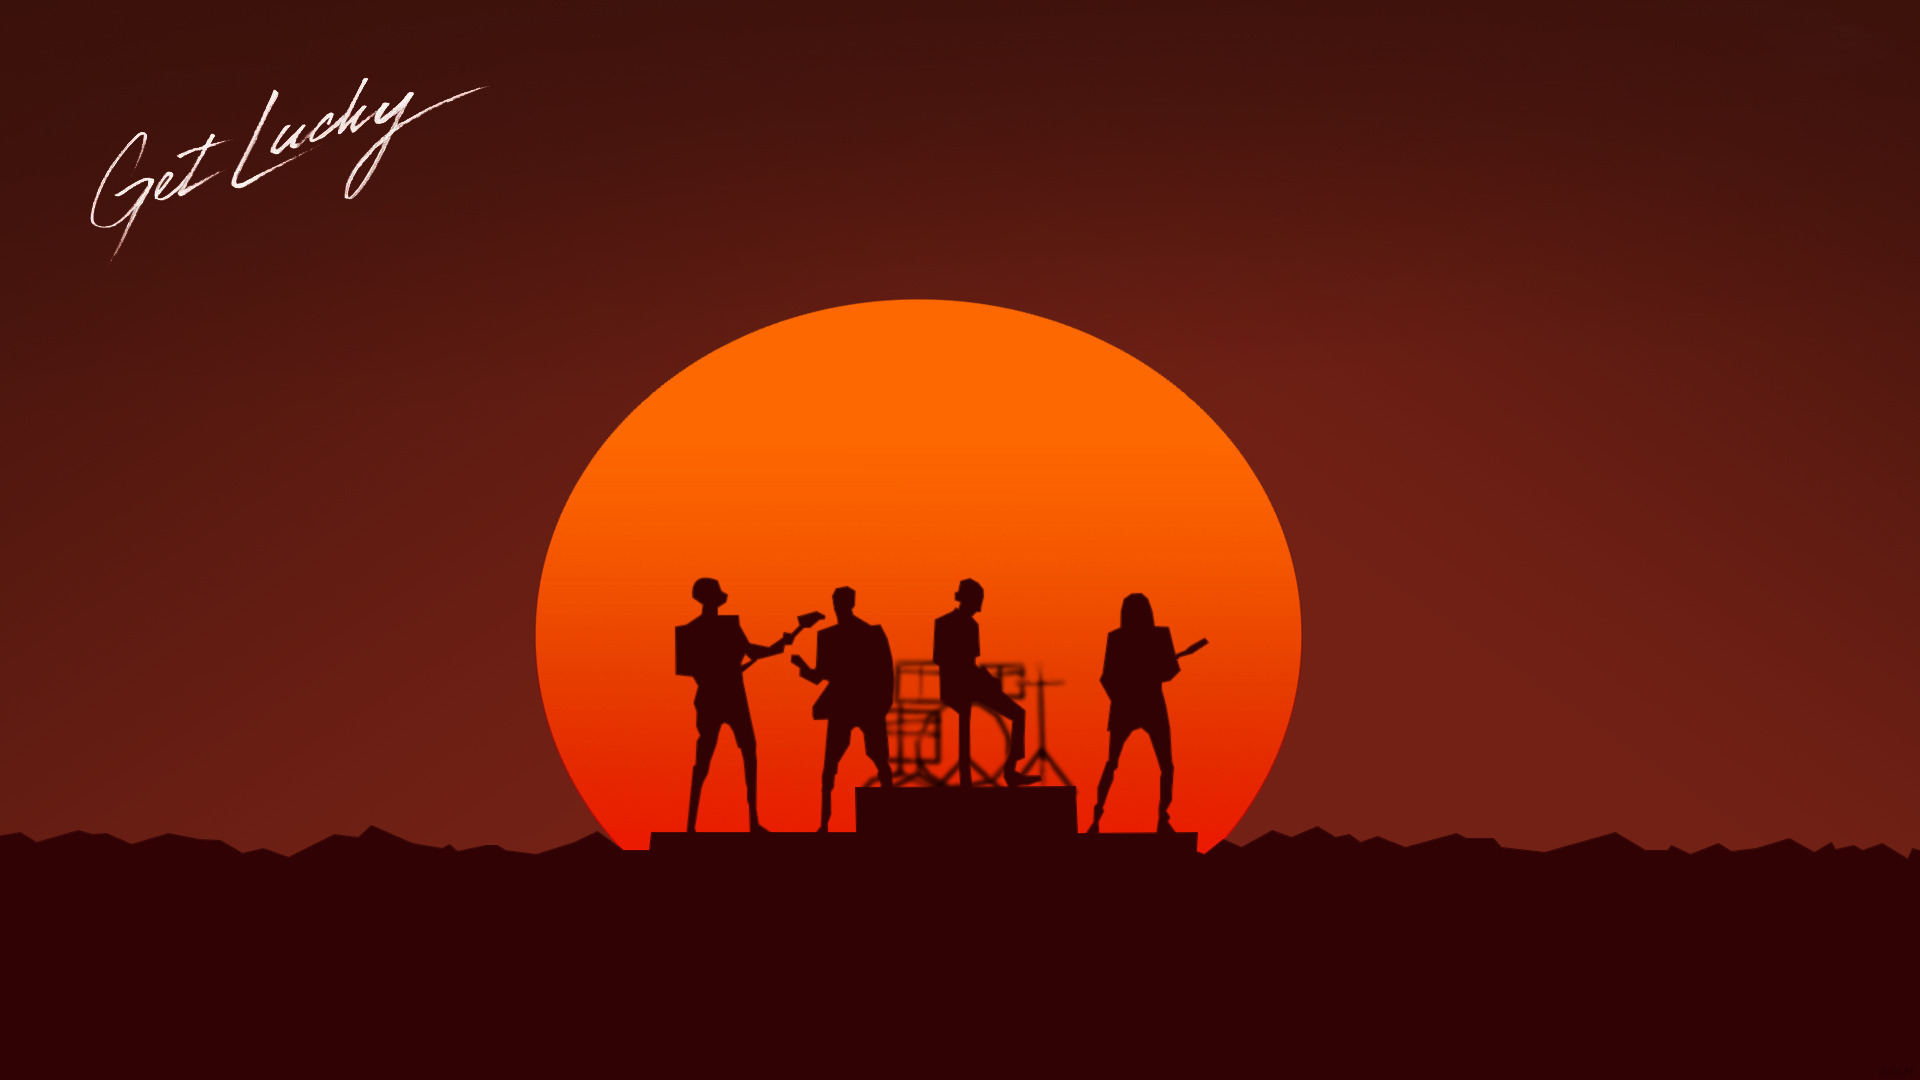 Hd Music Wallpapers For Android Group 62: Daft Punk Wallpapers, Pictures, Images